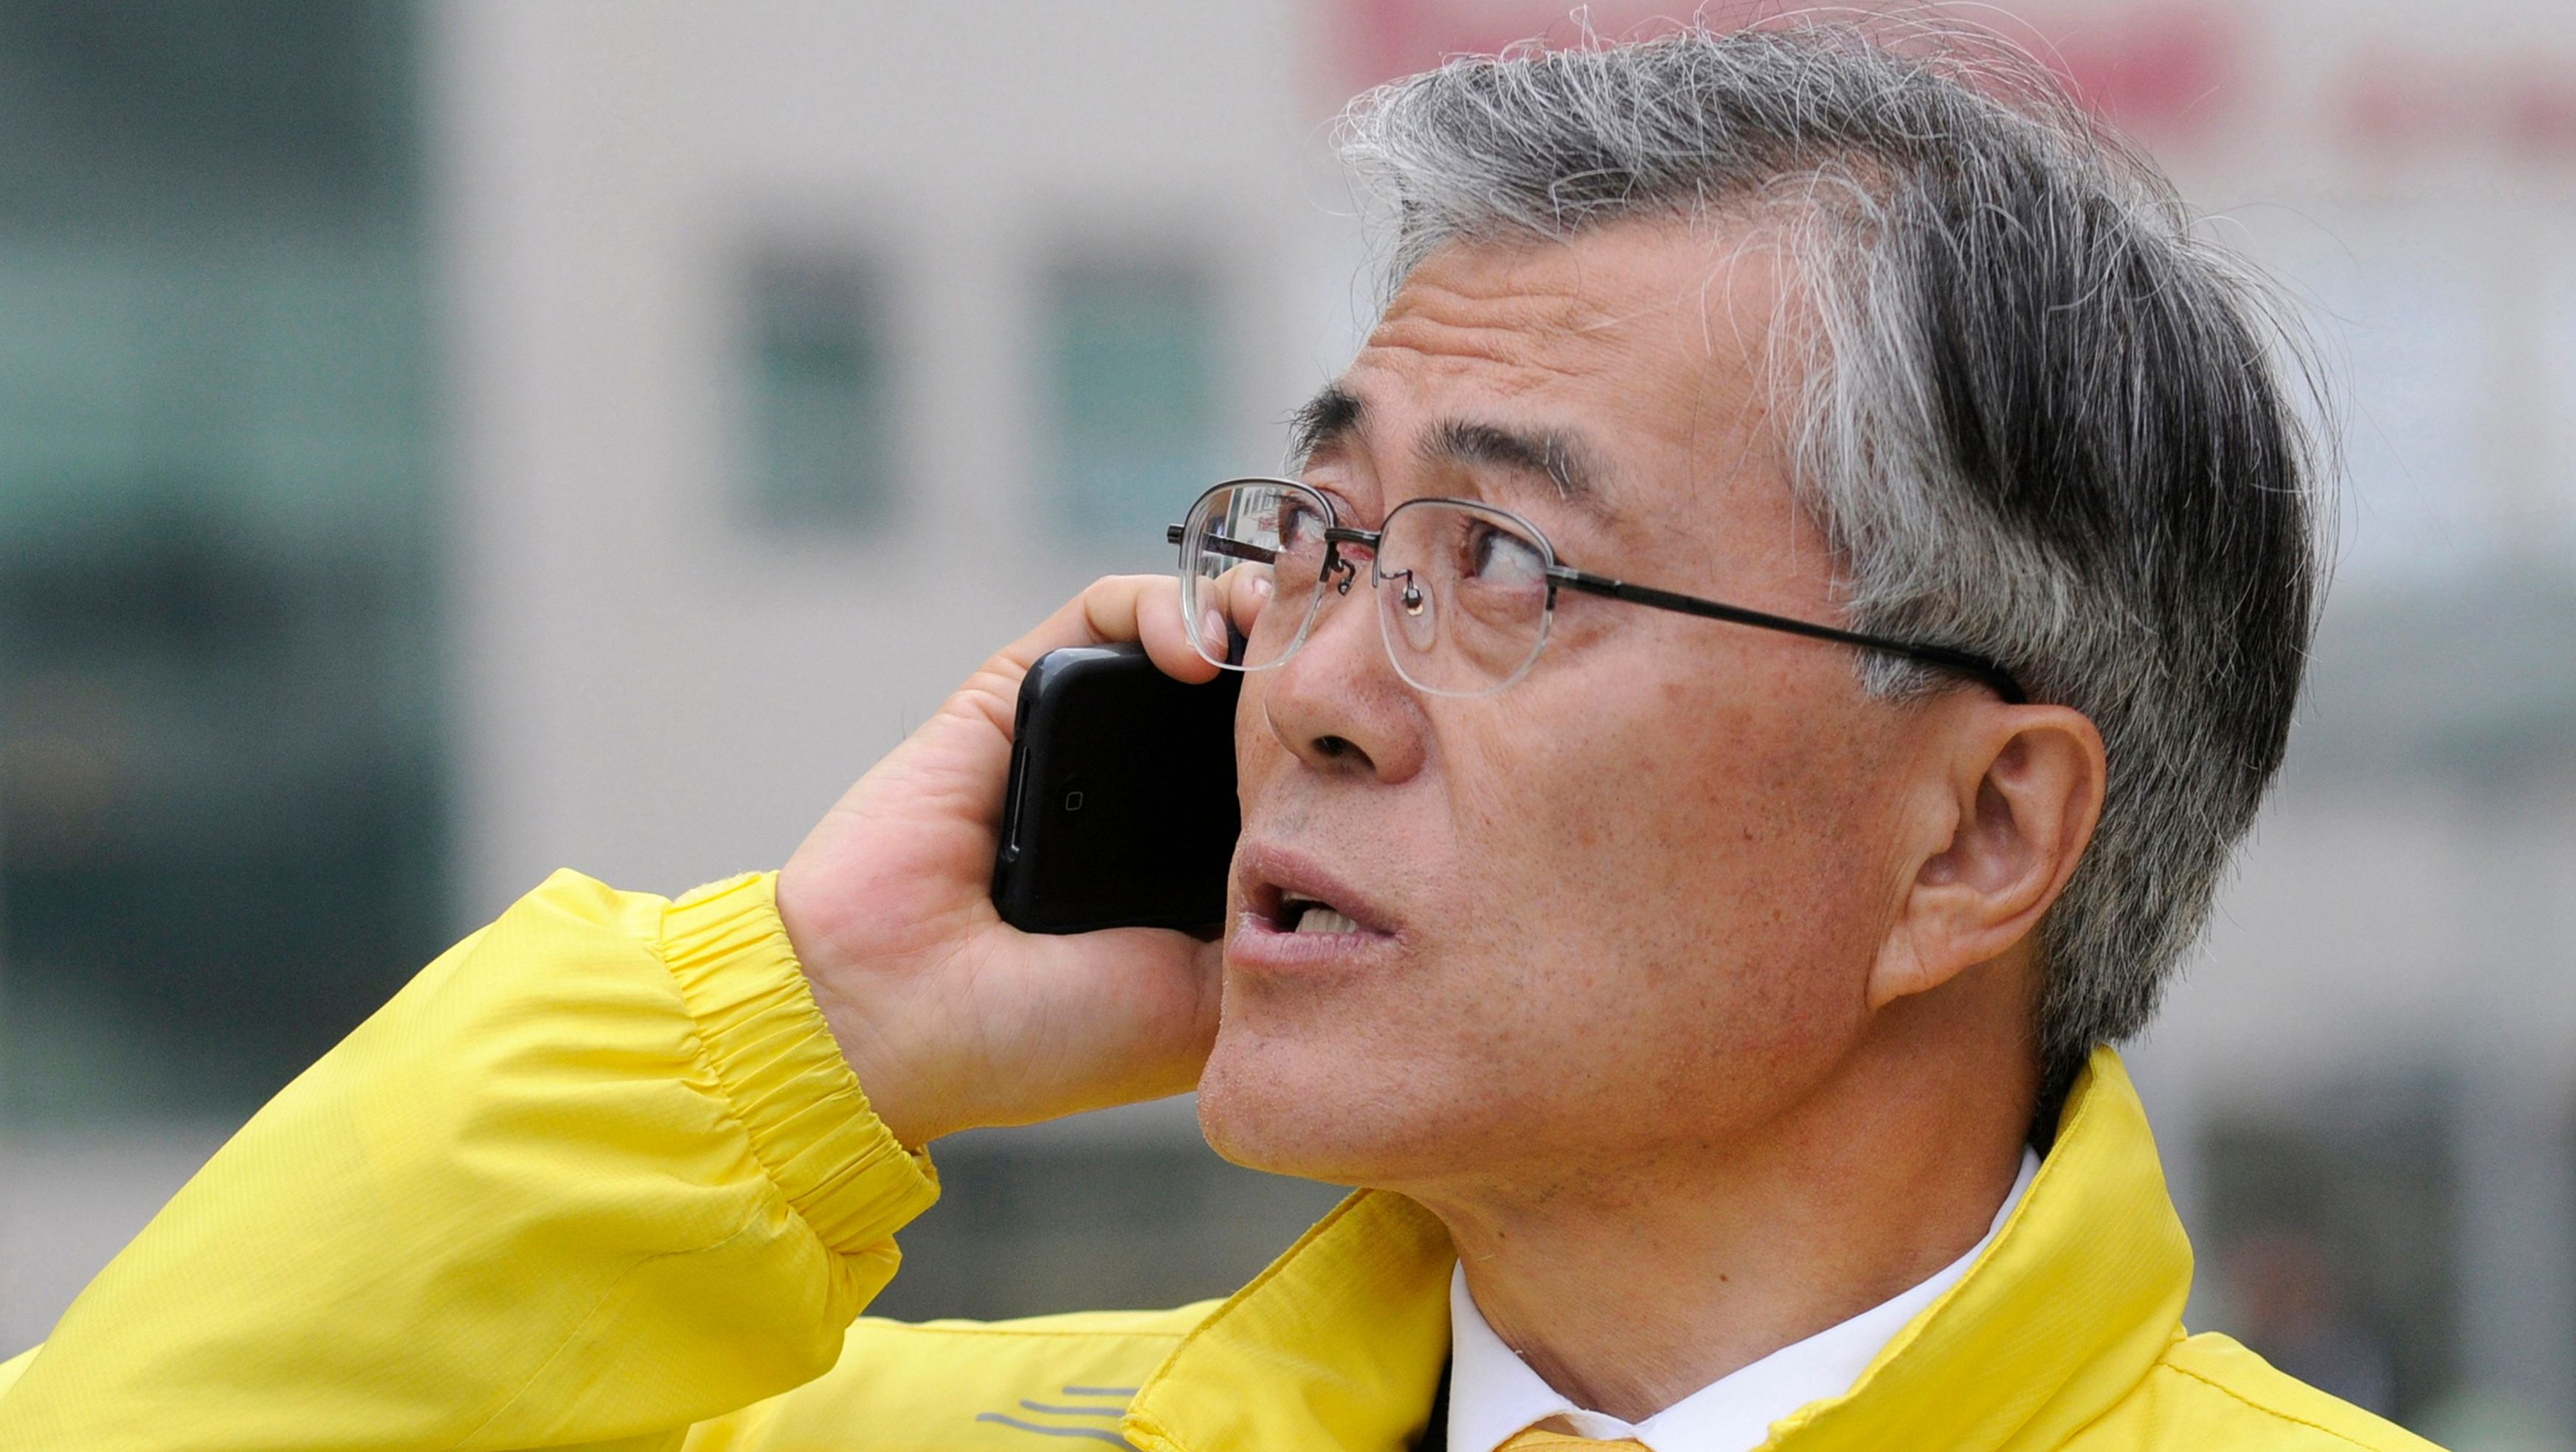 Human rights lawyer and a candidate of main opposition Democratic United Party for the paliamentary election, Moon Jae-in uses his mobile phone in Busan, southeast of Seoul April 11, 2012. South Koreans voted in parliamentary elections on Wednesday as the incumbent conservatives sought to overcome allegations of sleaze and growing discontent over the power of big business. Opinion polls indicated that the conservatives and the progressive and reform opposition parties are in a dead heat in the election that serves as a curtain-raiser for the presidential vote in December. Moon is one of the leading candidates of the presidential election.    REUTERS/Ben Weller  (SOUTH KOREA - Tags: POLITICS ELECTIONS) - GM1E84B1F6901